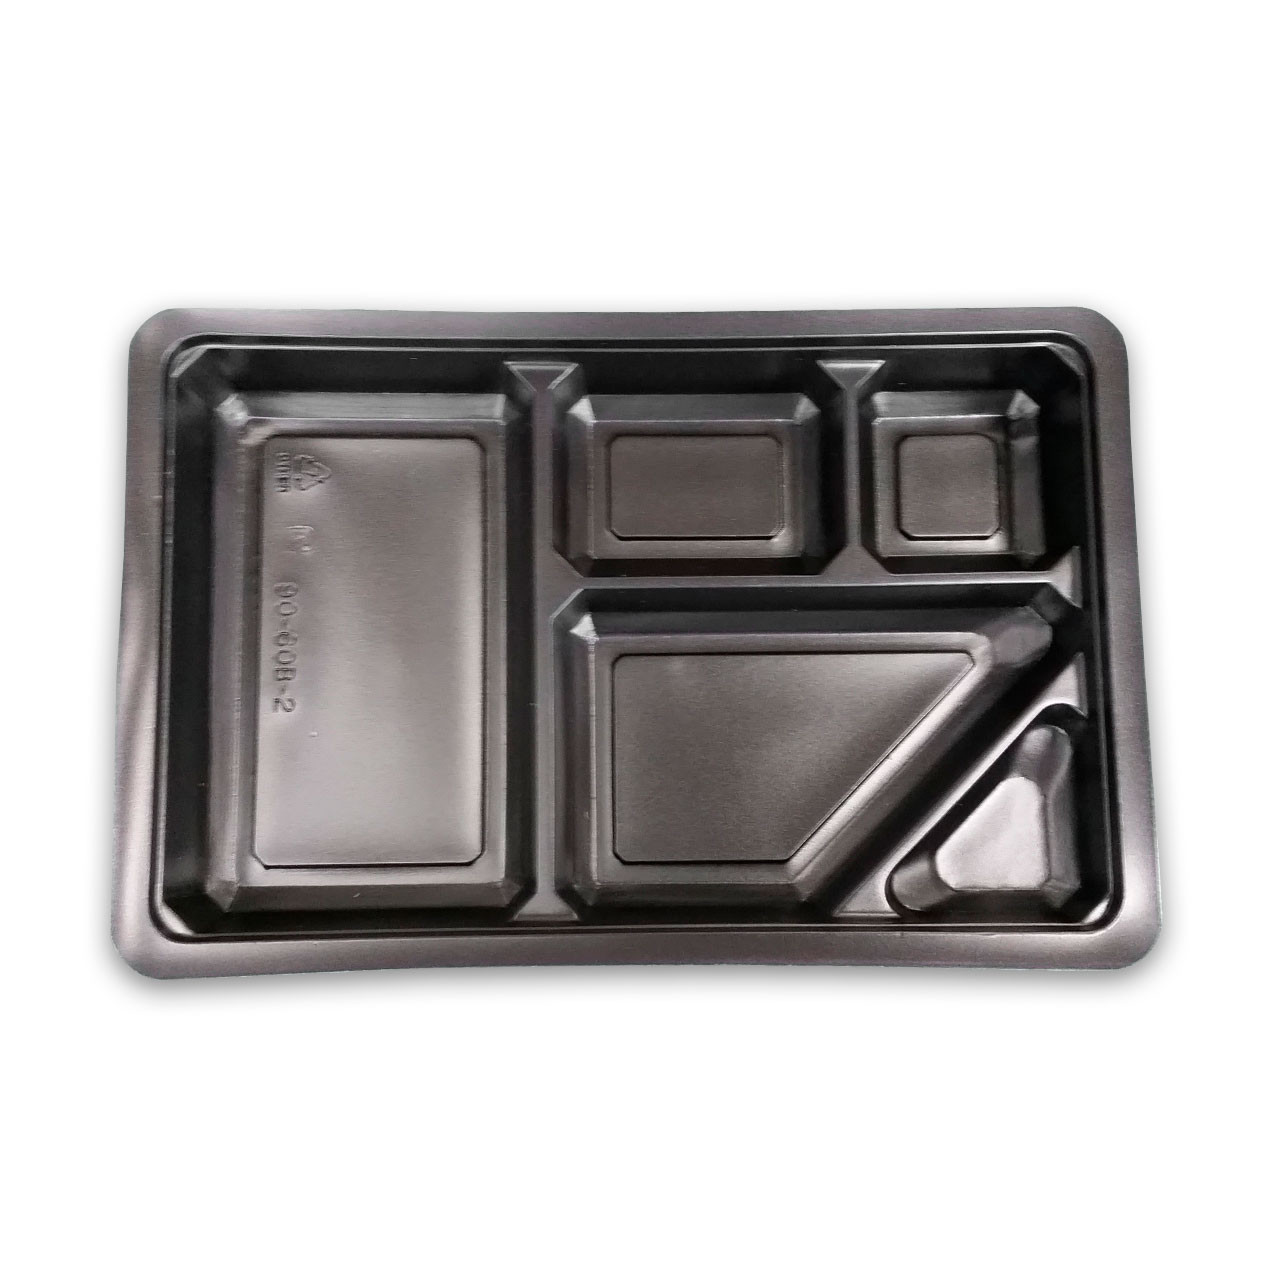 Tsubaki Square Take Out Bento Box Inside Compartment